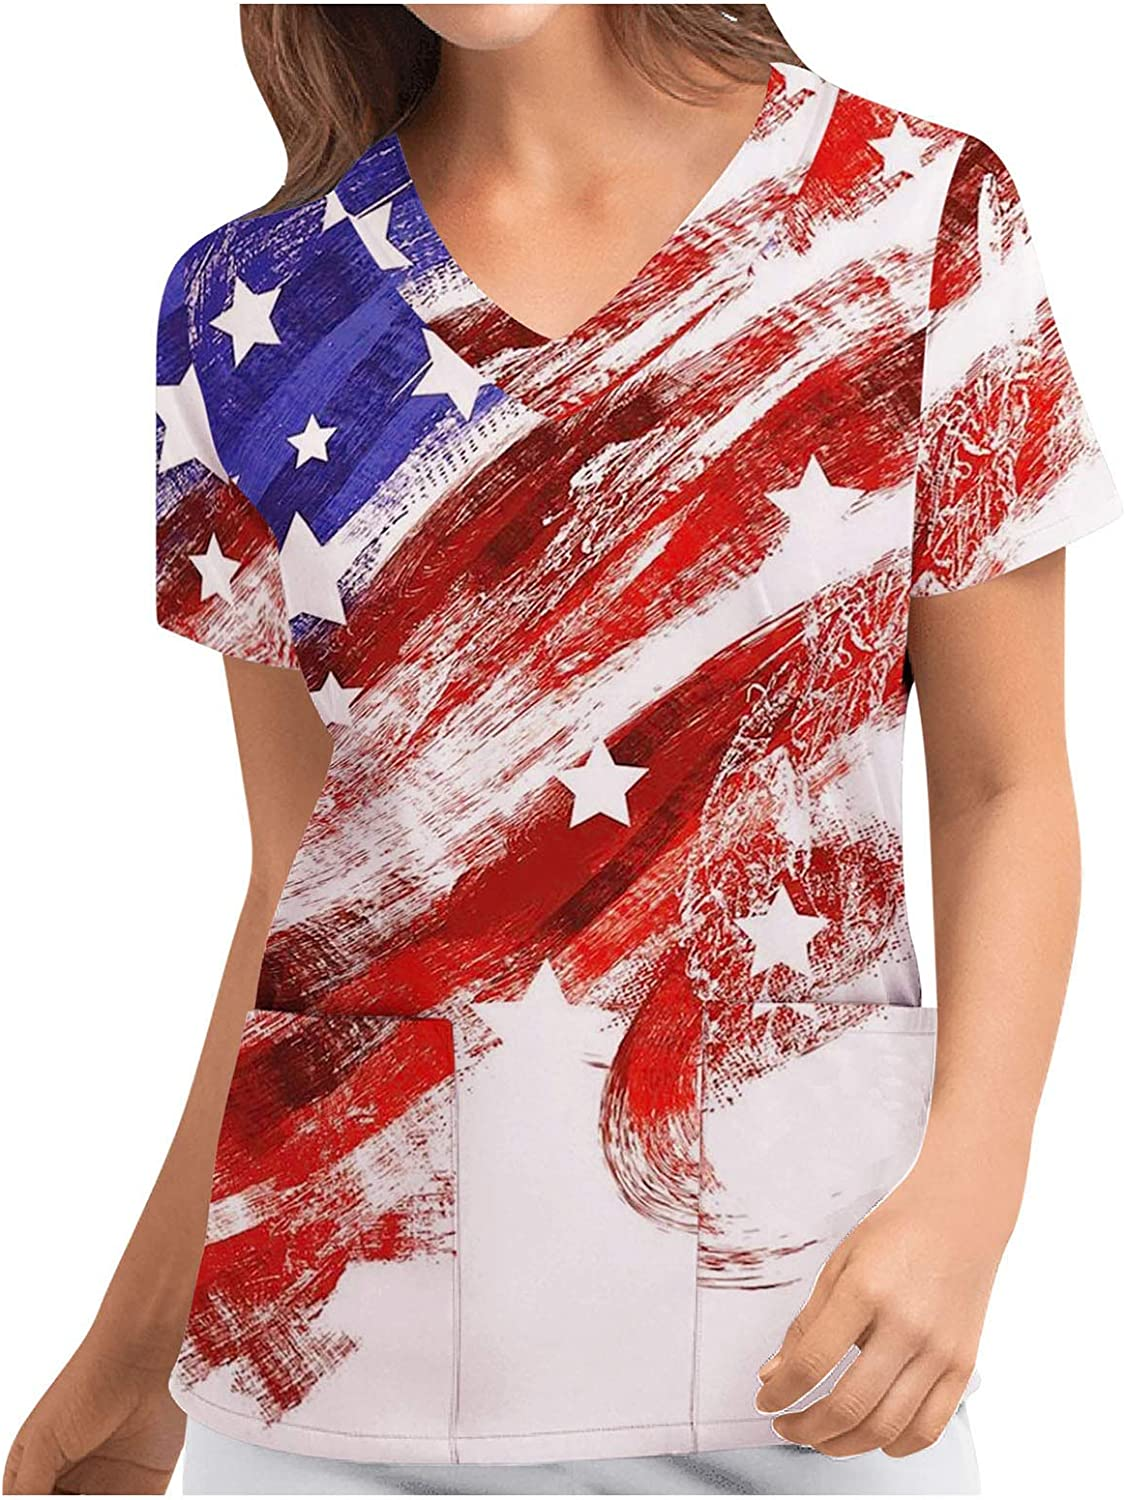 Aukbays Workwear for Women Independence Day US Flag Print Graphic Tees Short Sleeve Tops T-Shirts O Neck Casual Shirt